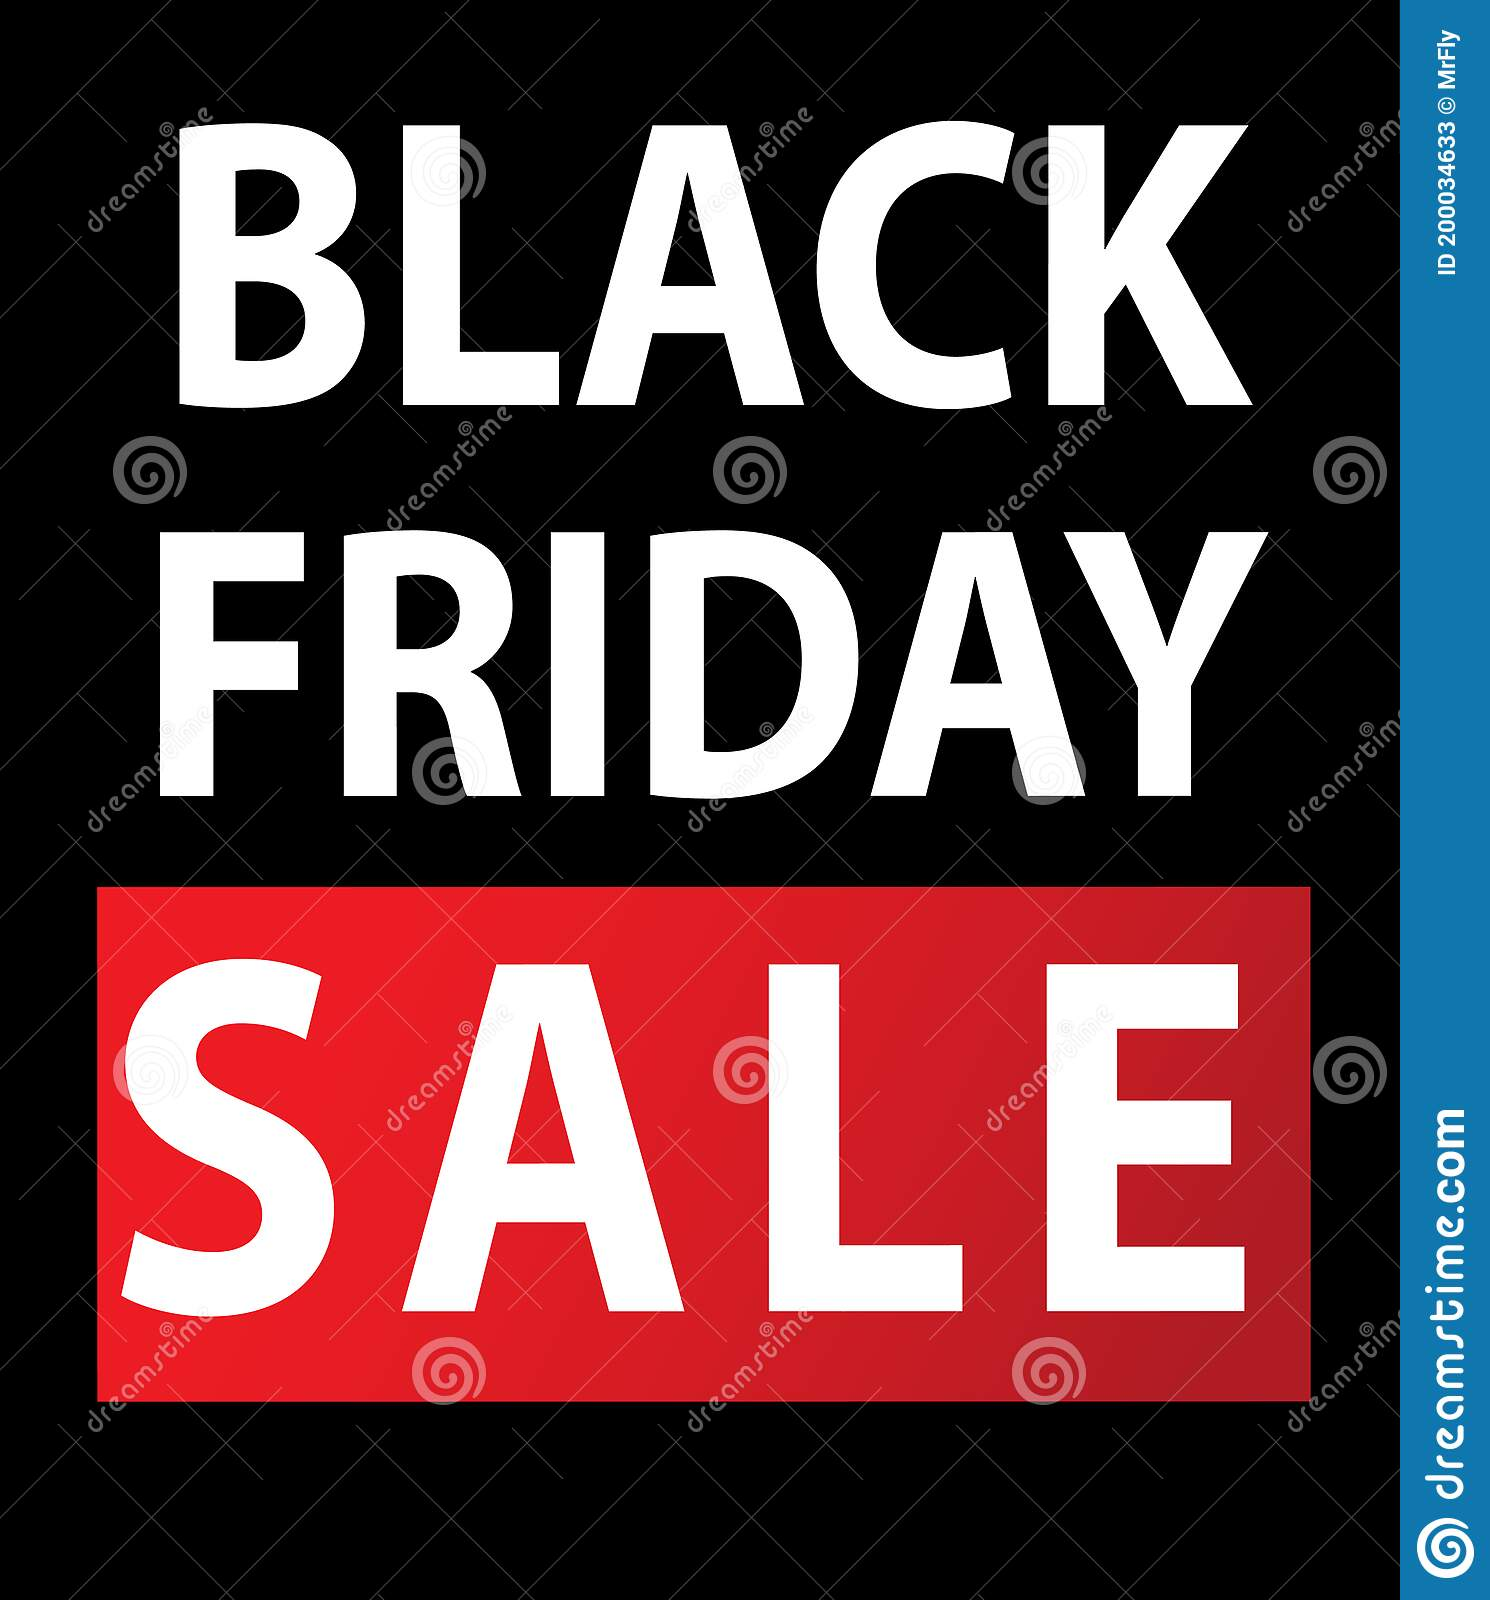 Black Friday Sale Simple 3 Color Vector Illustration Stock Vector Illustration Of Percent Available 200034633